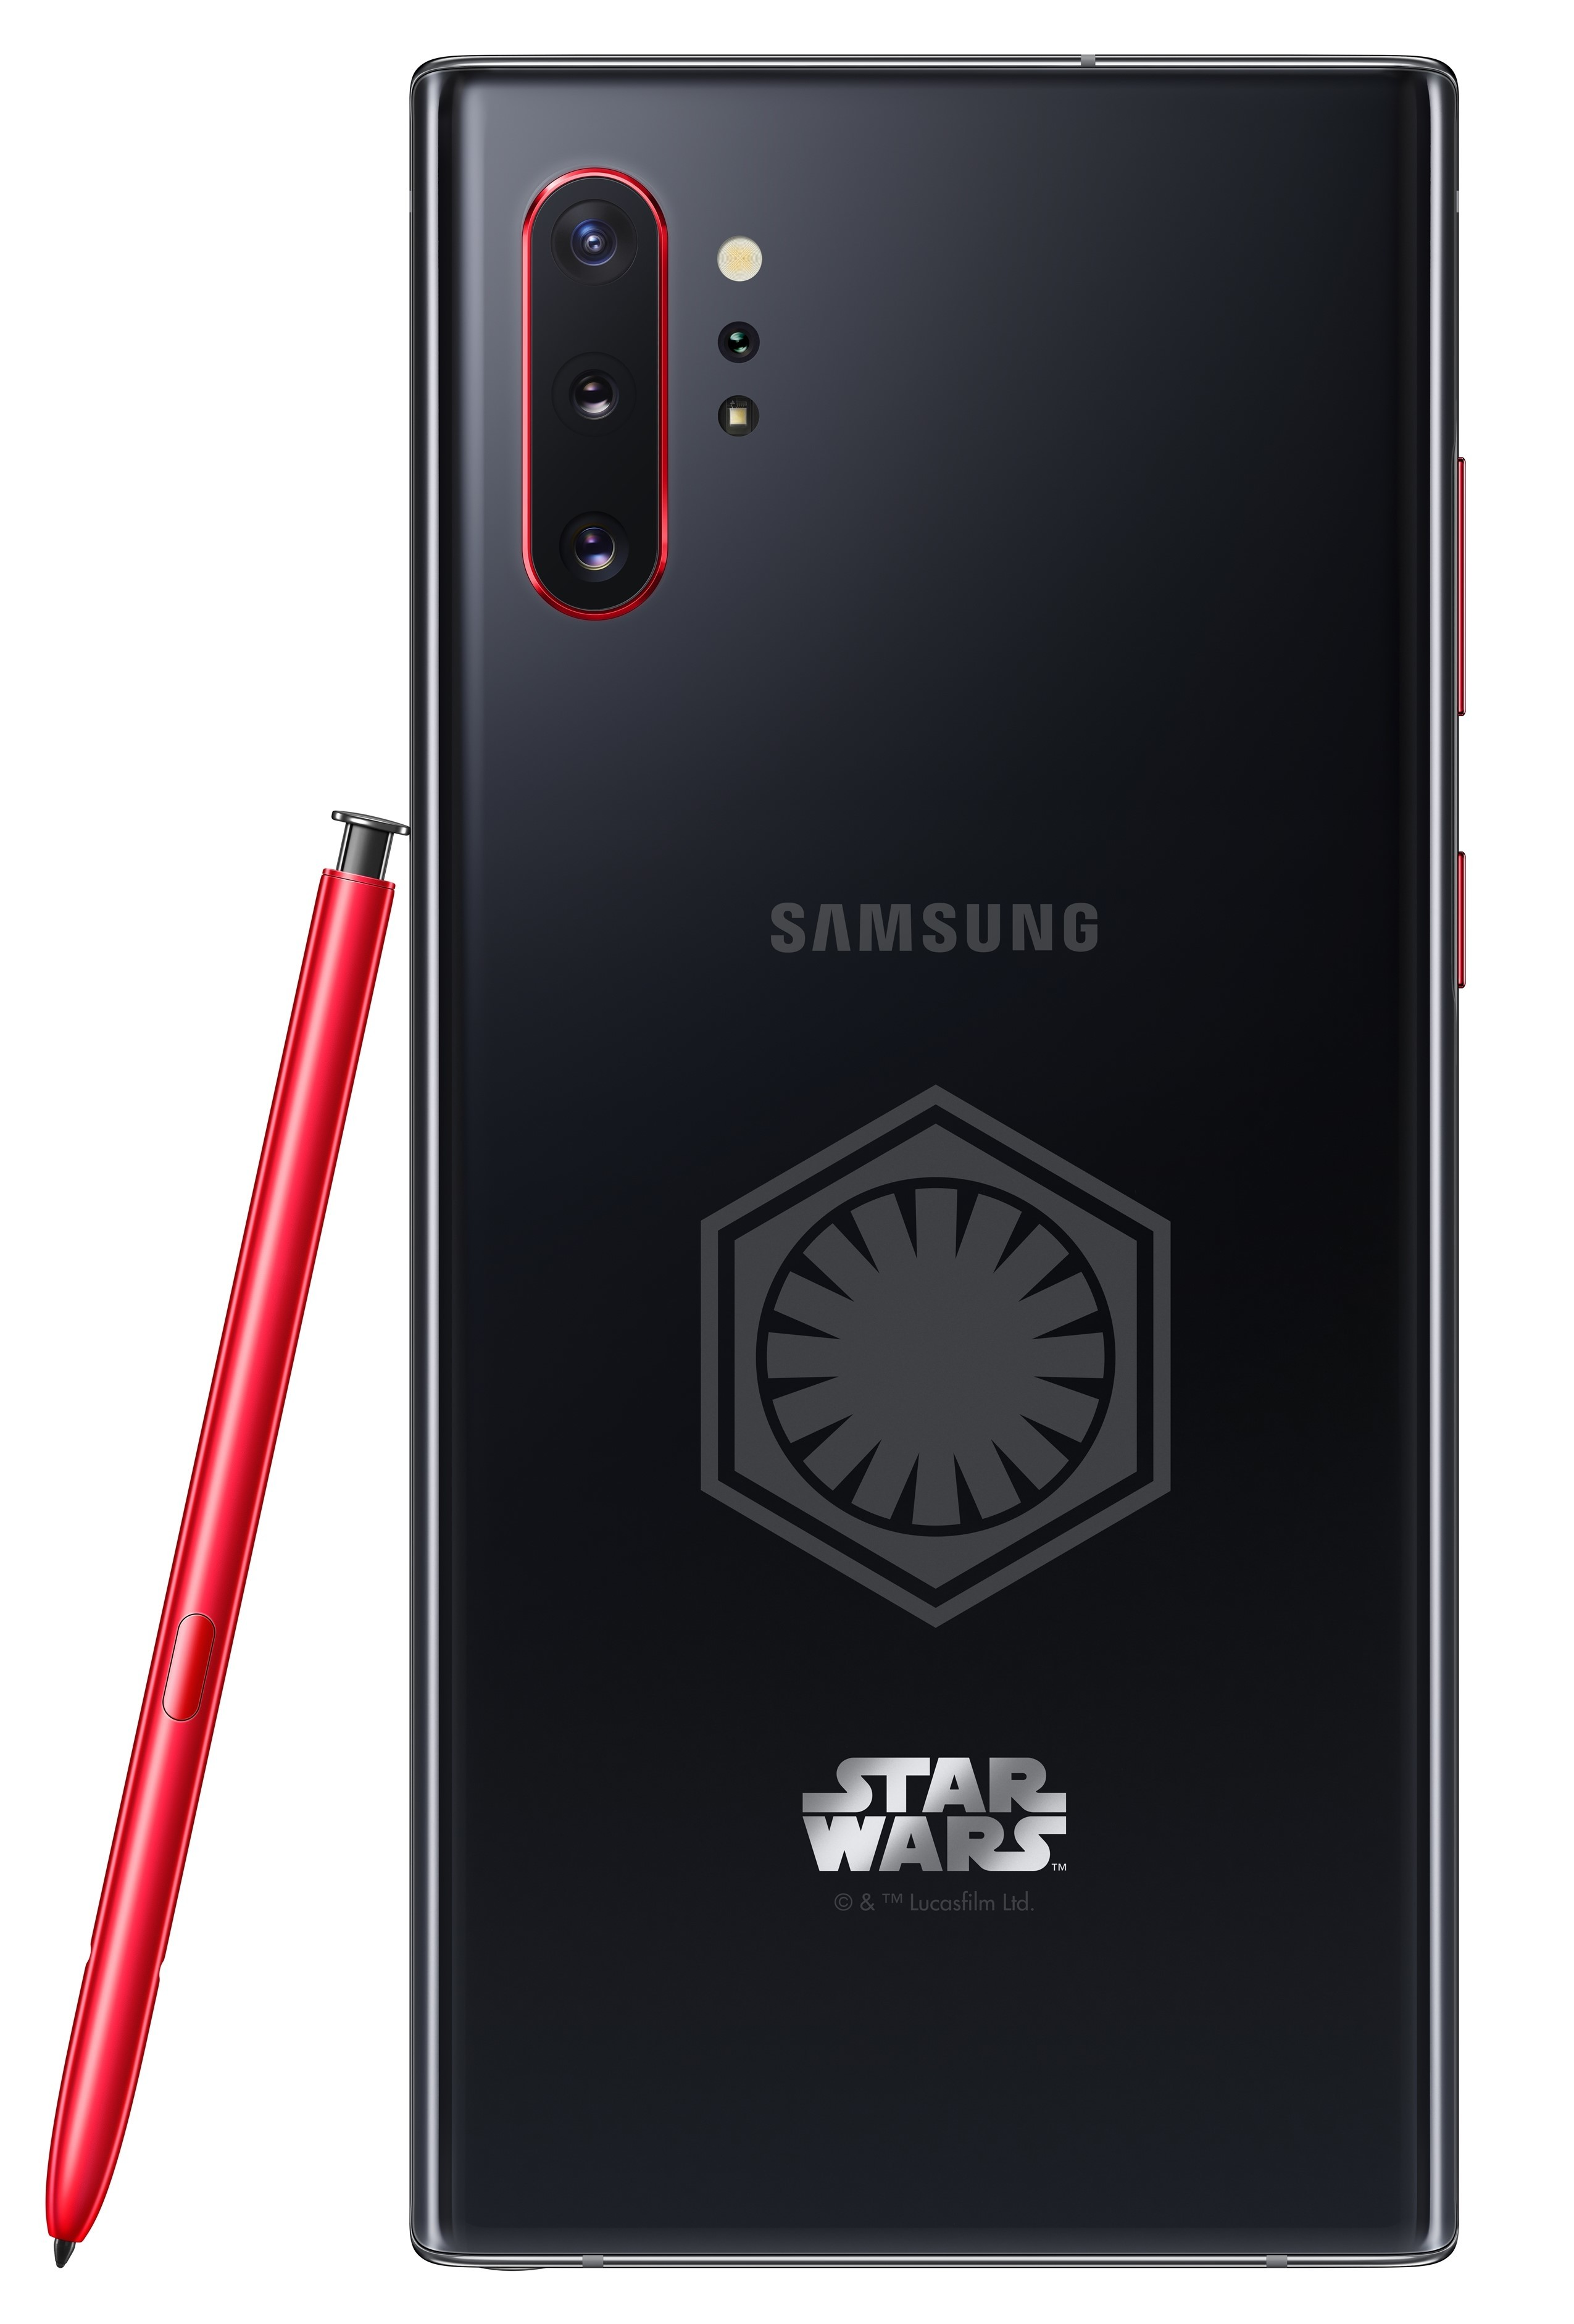 1574097203 starwars edition note10 back